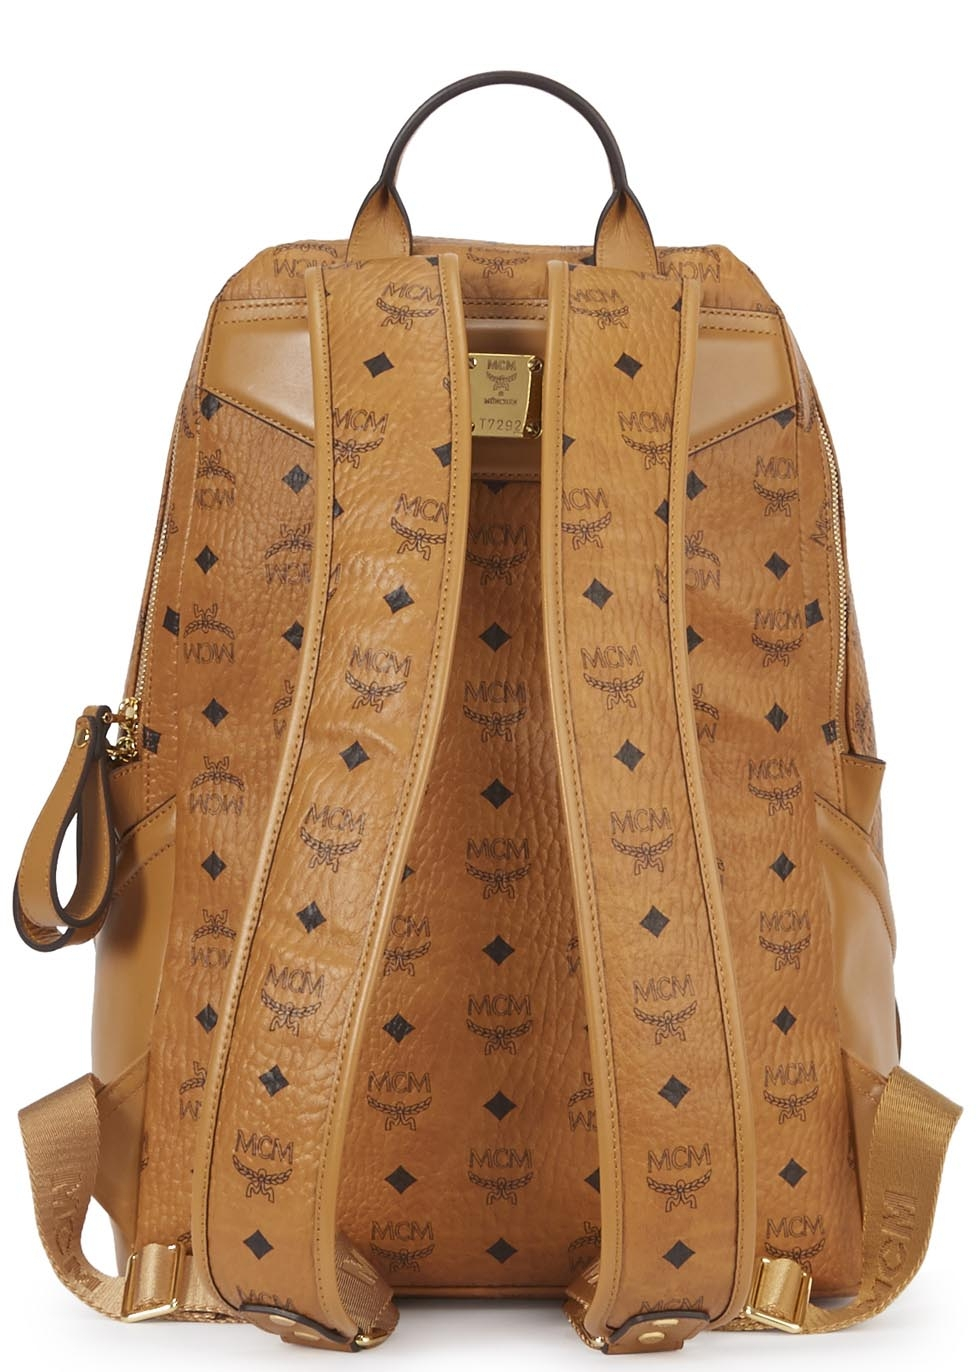 Camel Leather Backpack - Crazy Backpacks